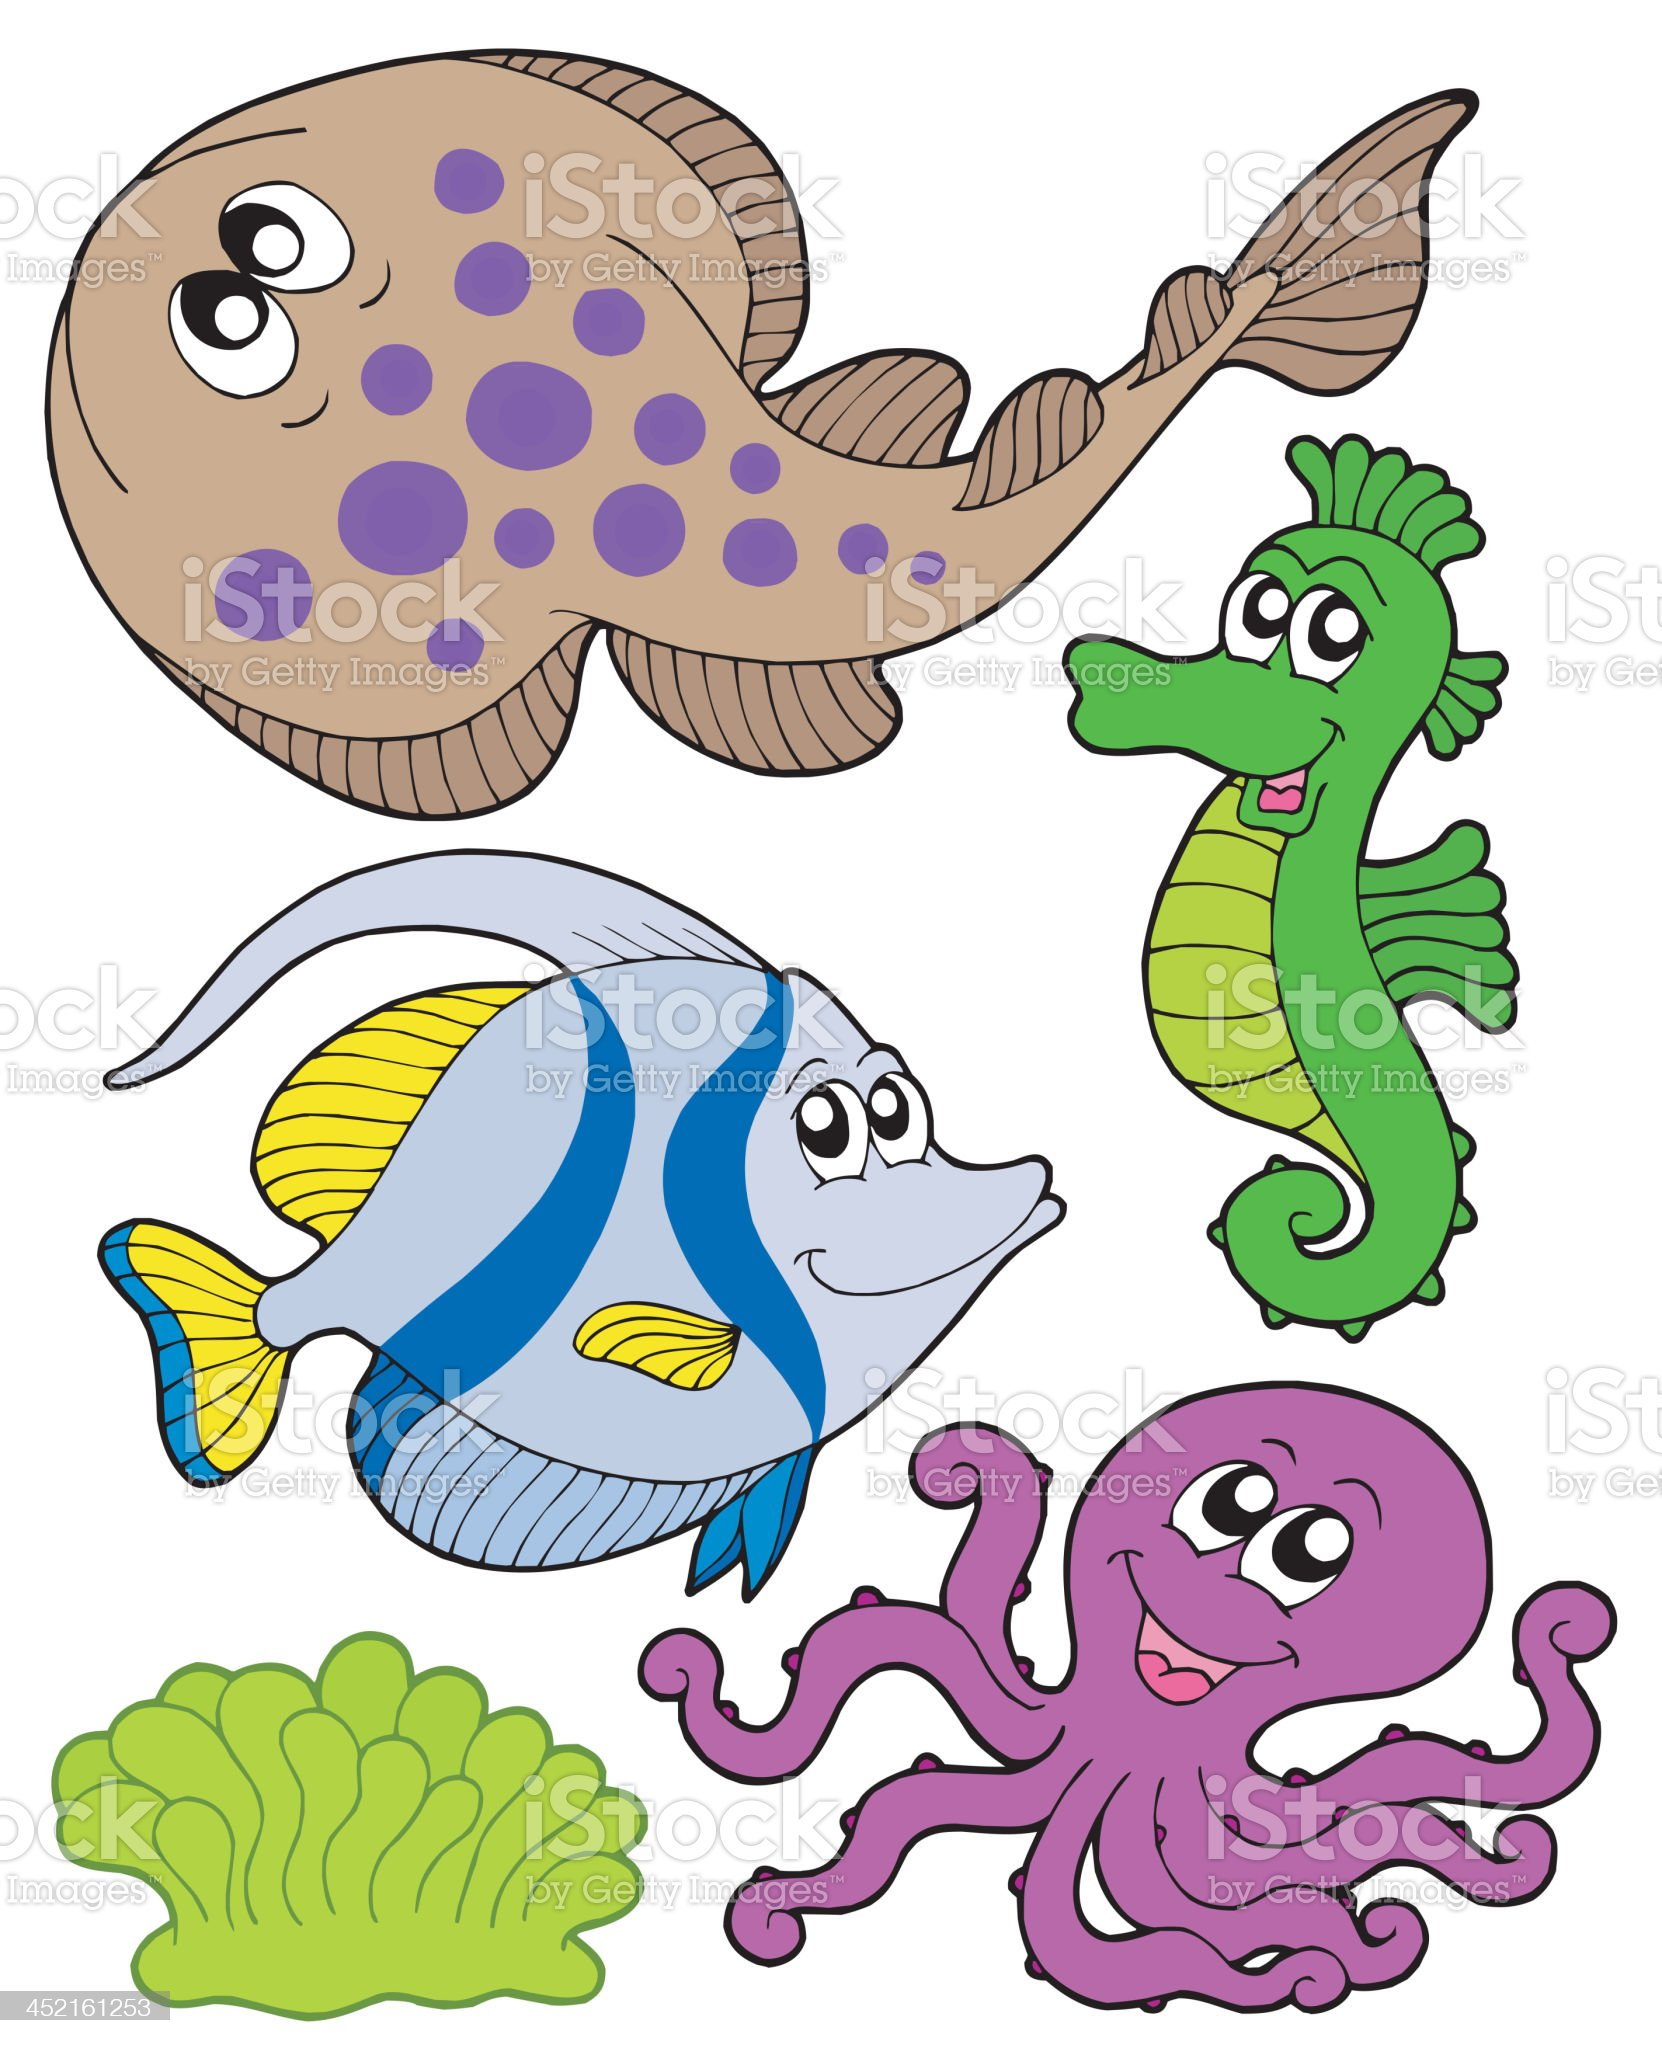 Cute marine animals collection 3 royalty-free stock vector art